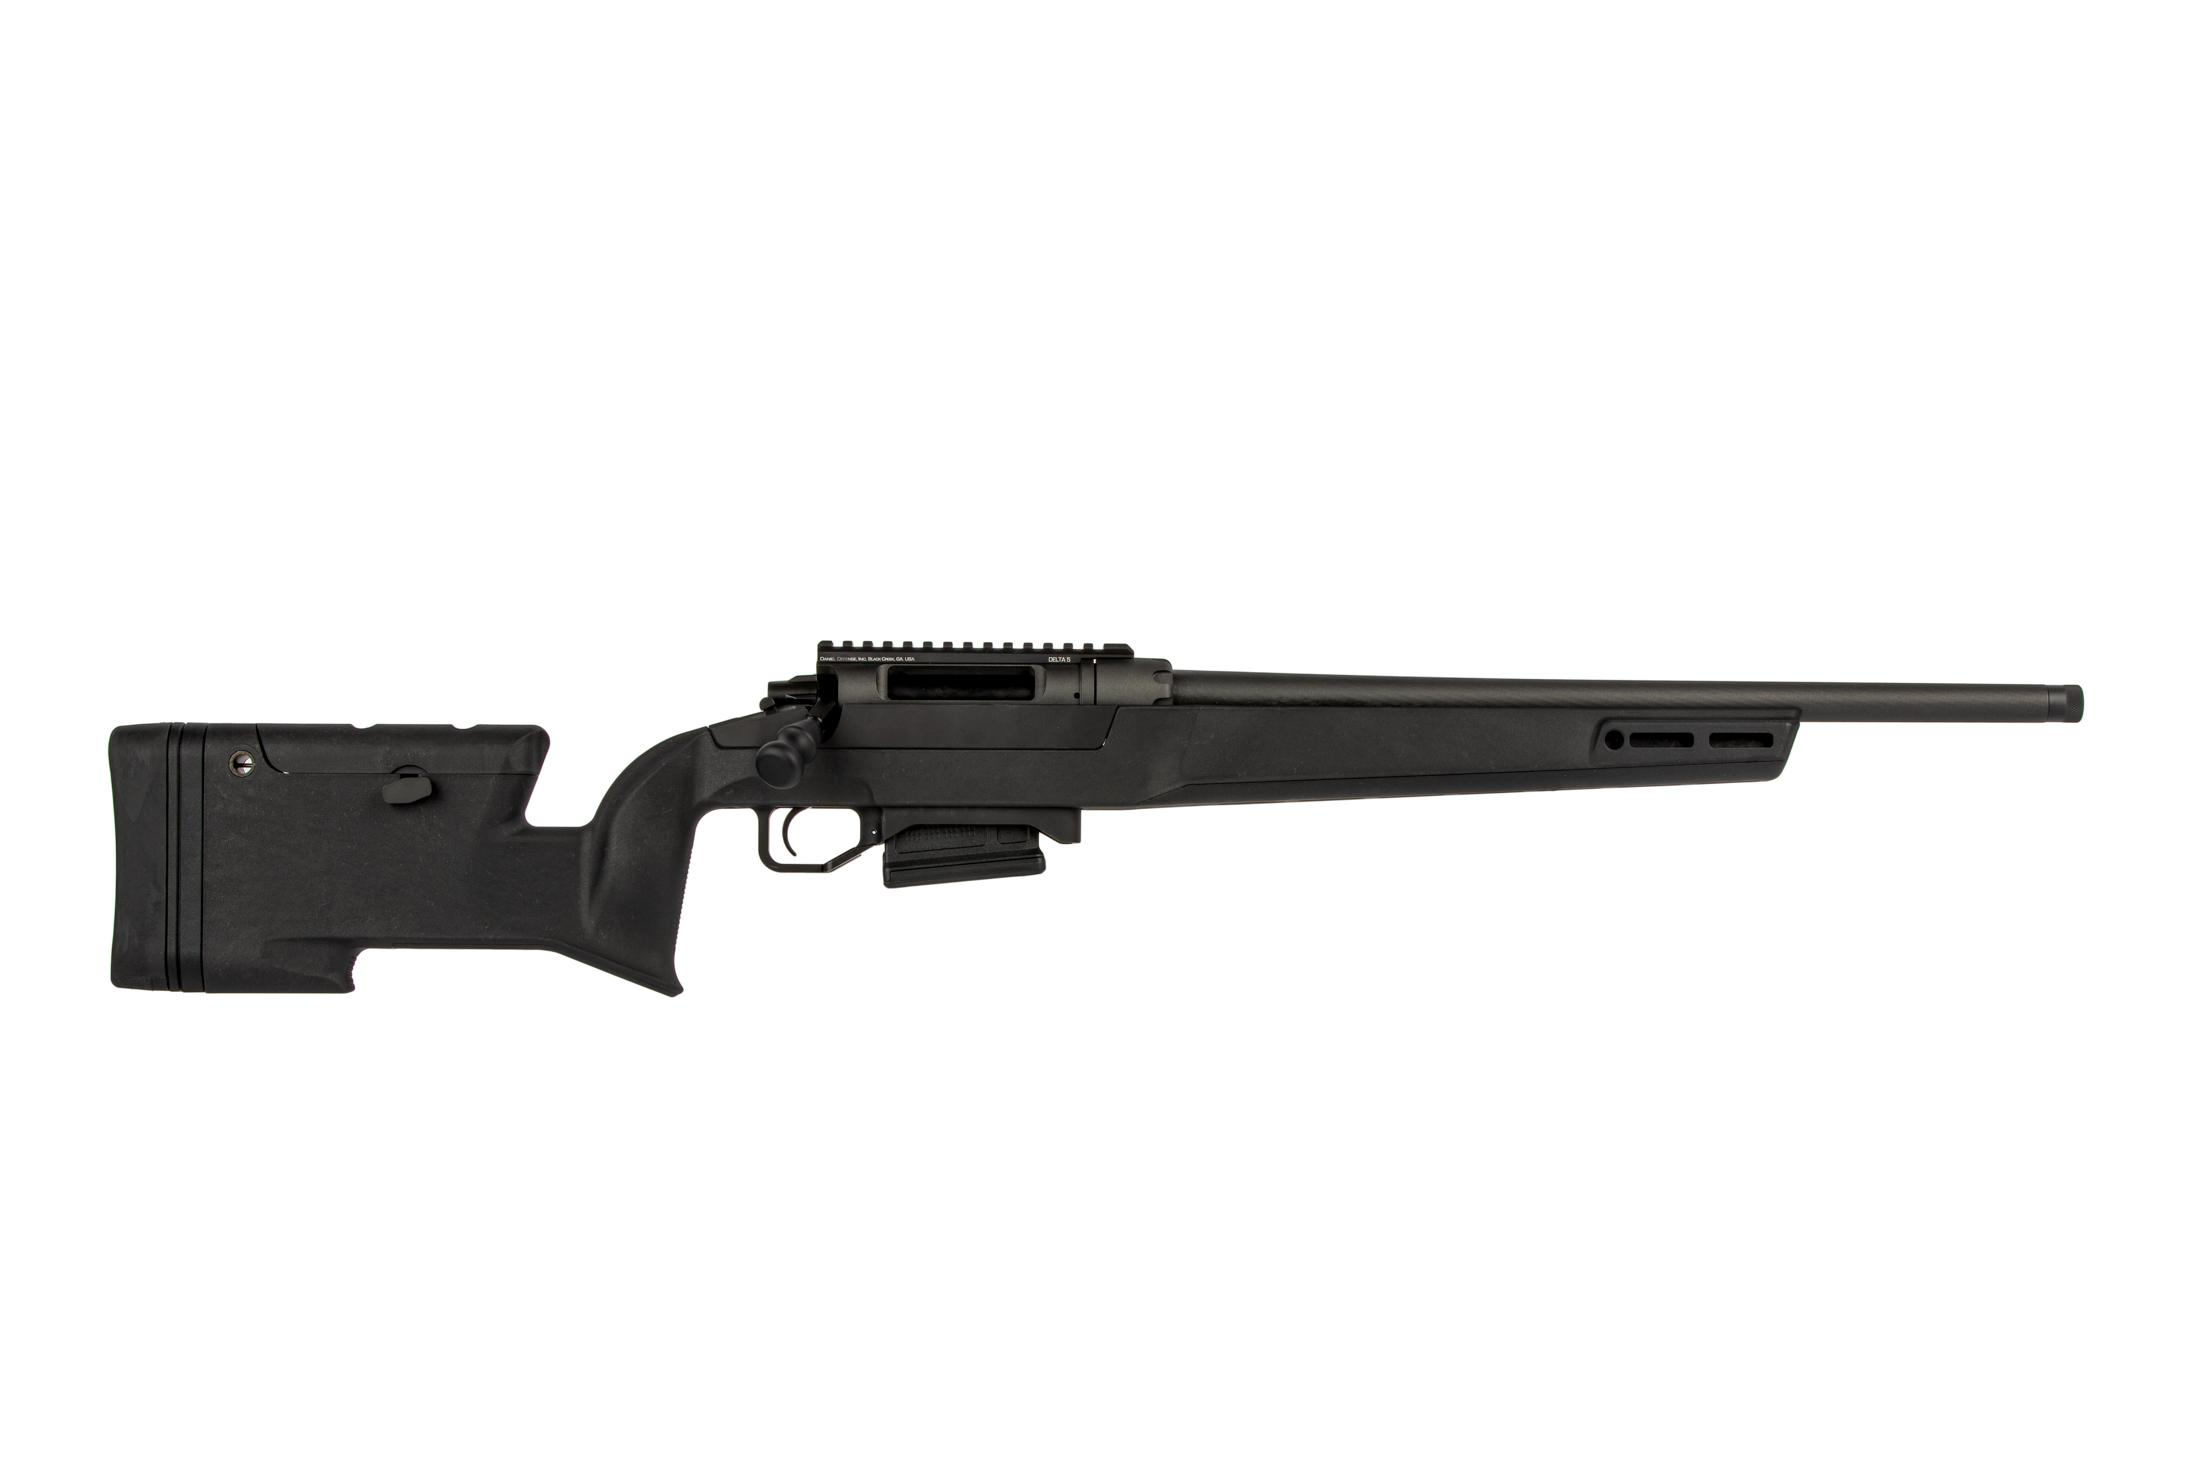 The Daniel Defense Delta 5 rifle is chambered in .308 Winchester with a 20 inch barrel